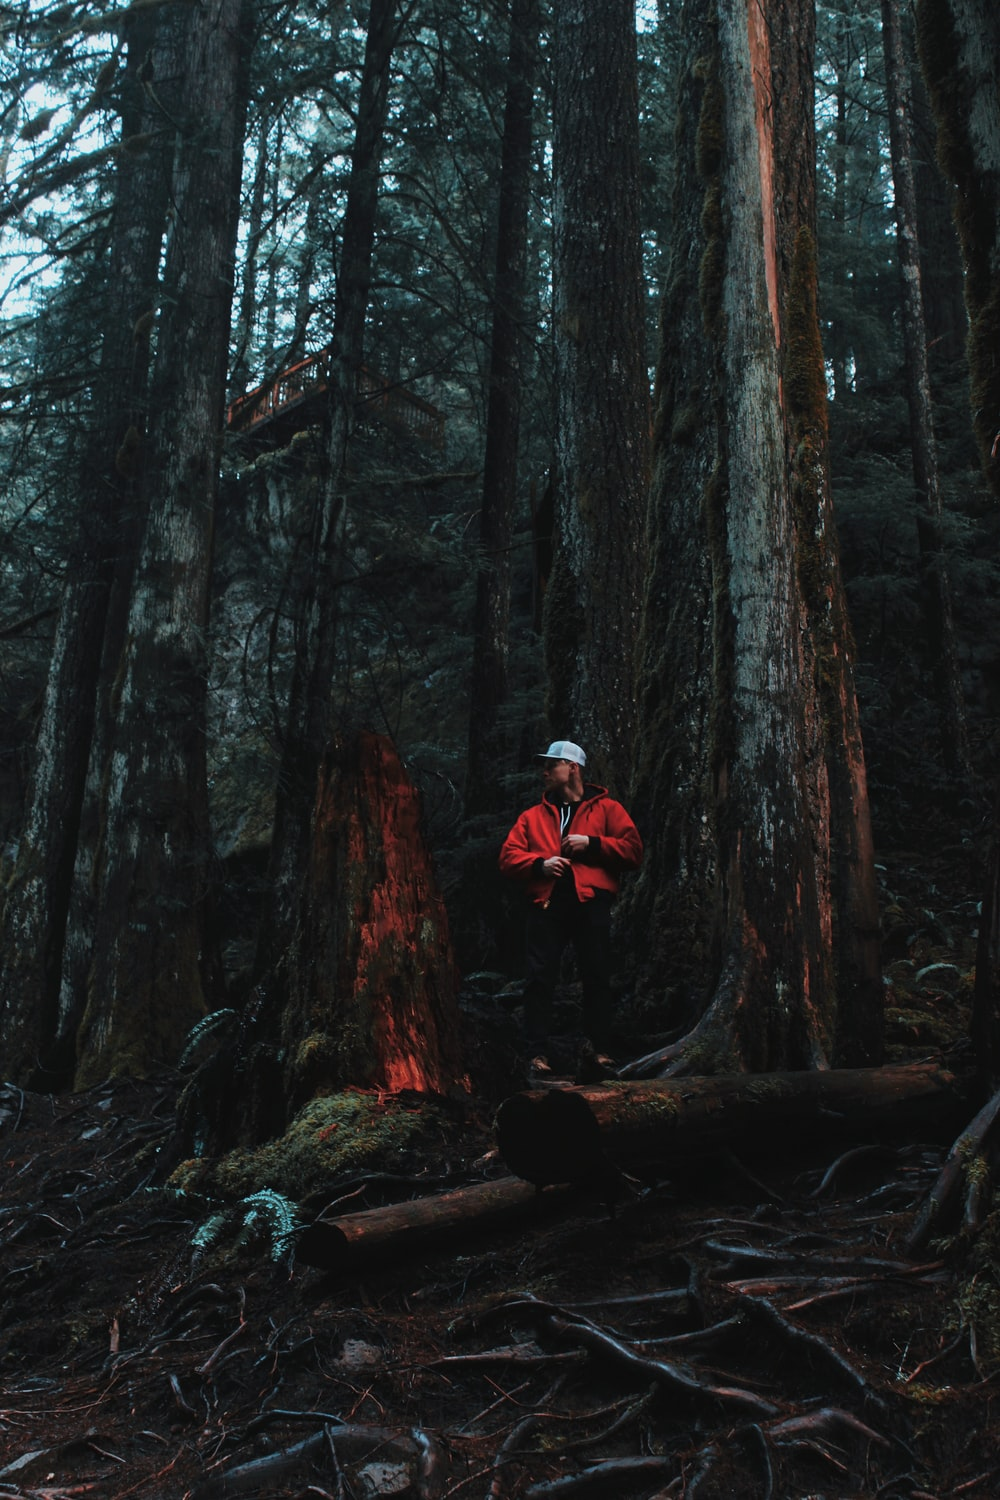 man in forest in red jacket